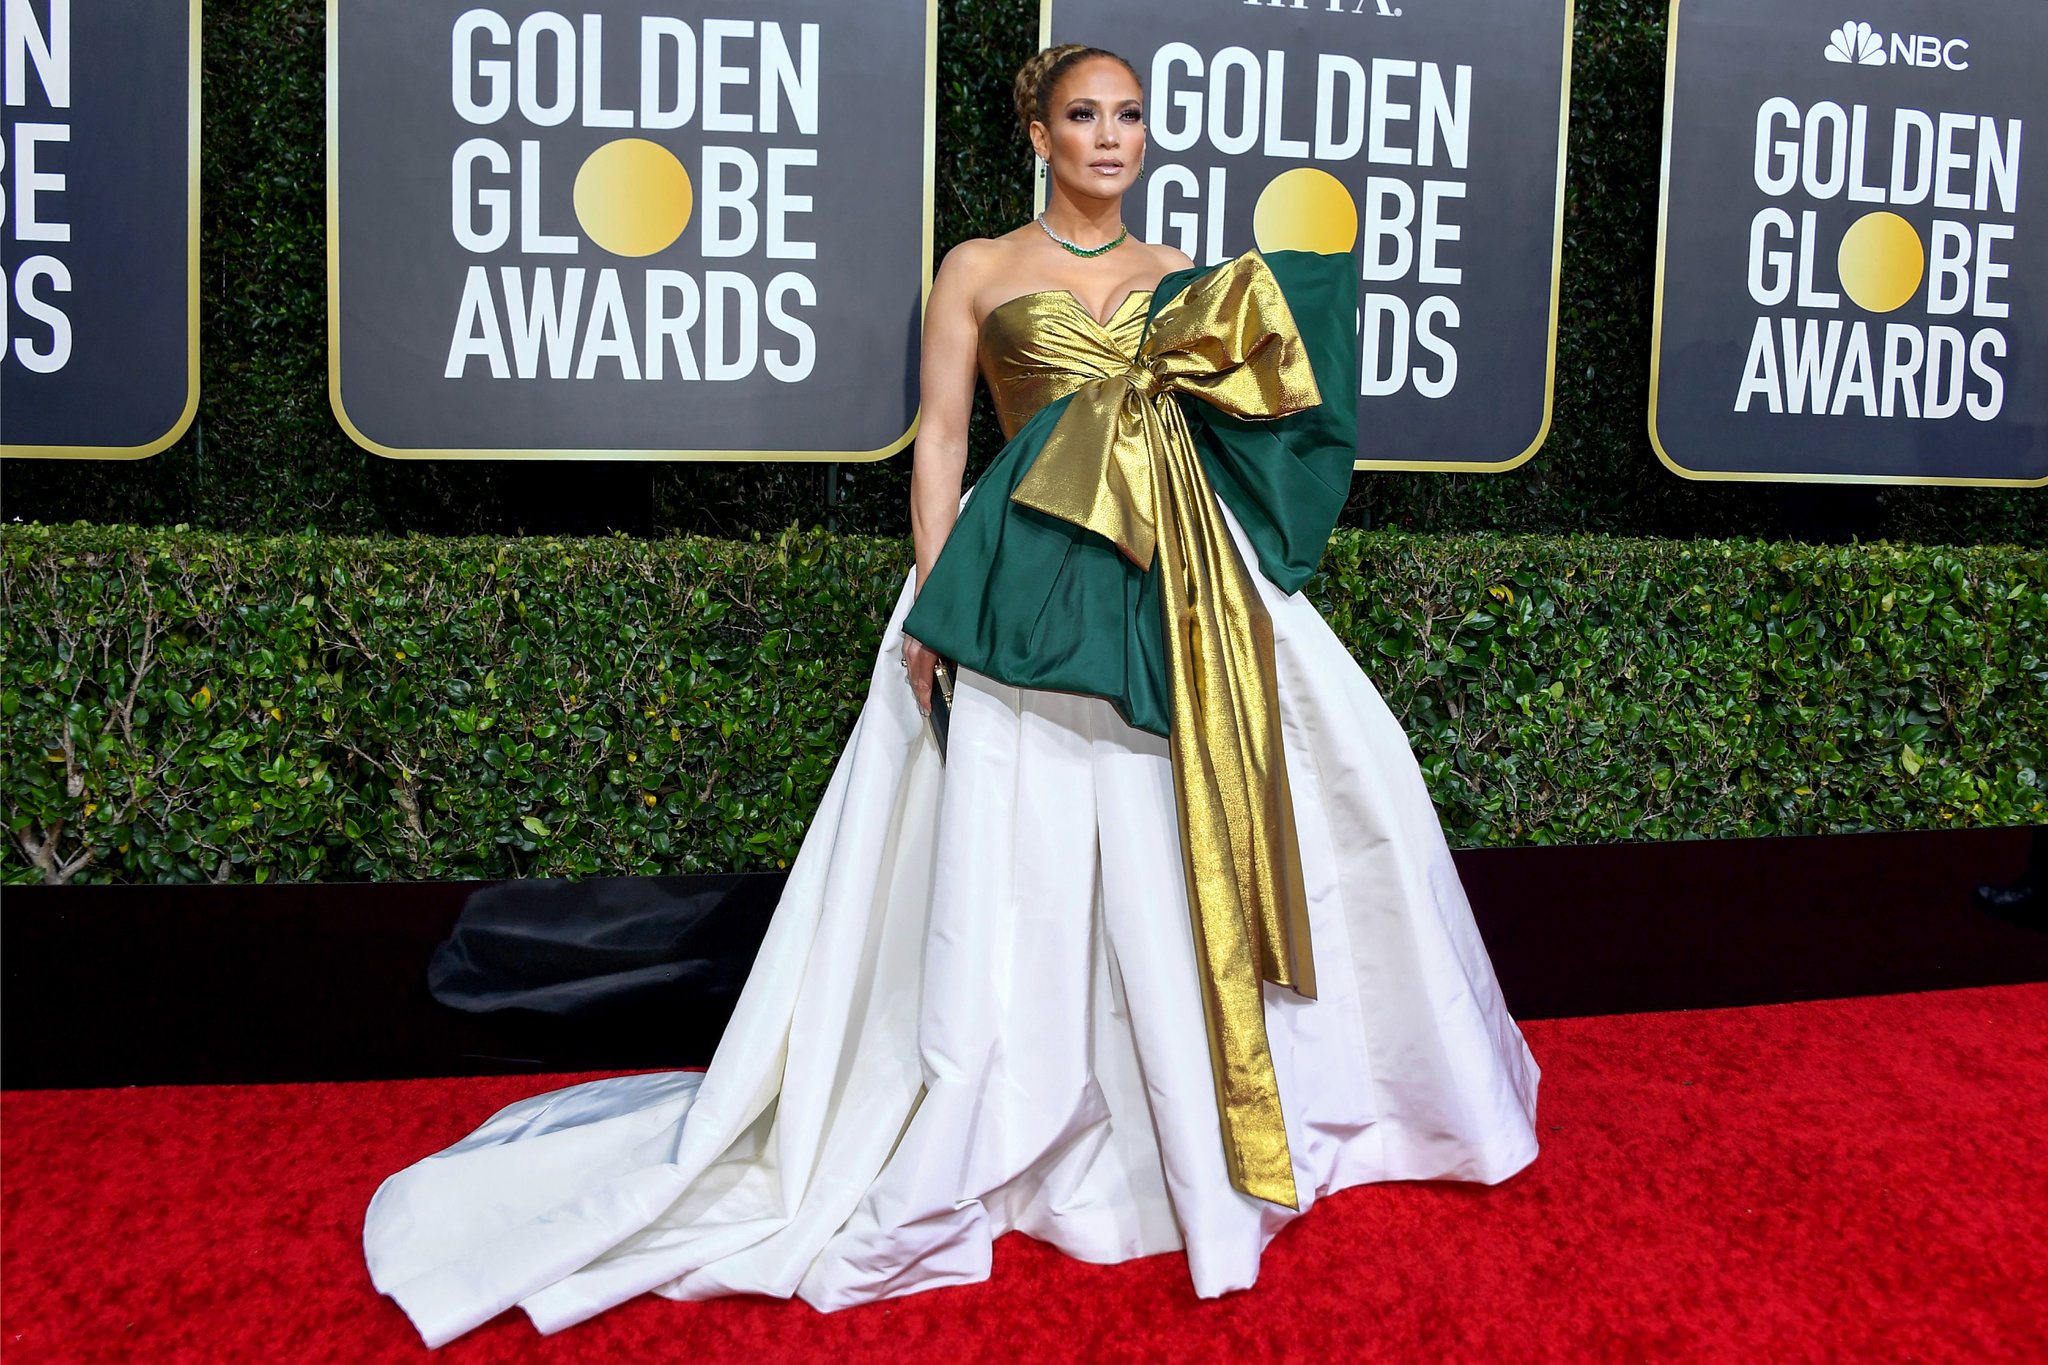 This Golden Globes Red Carpet Was Not Harvey Weinsteins Red 2048x1365